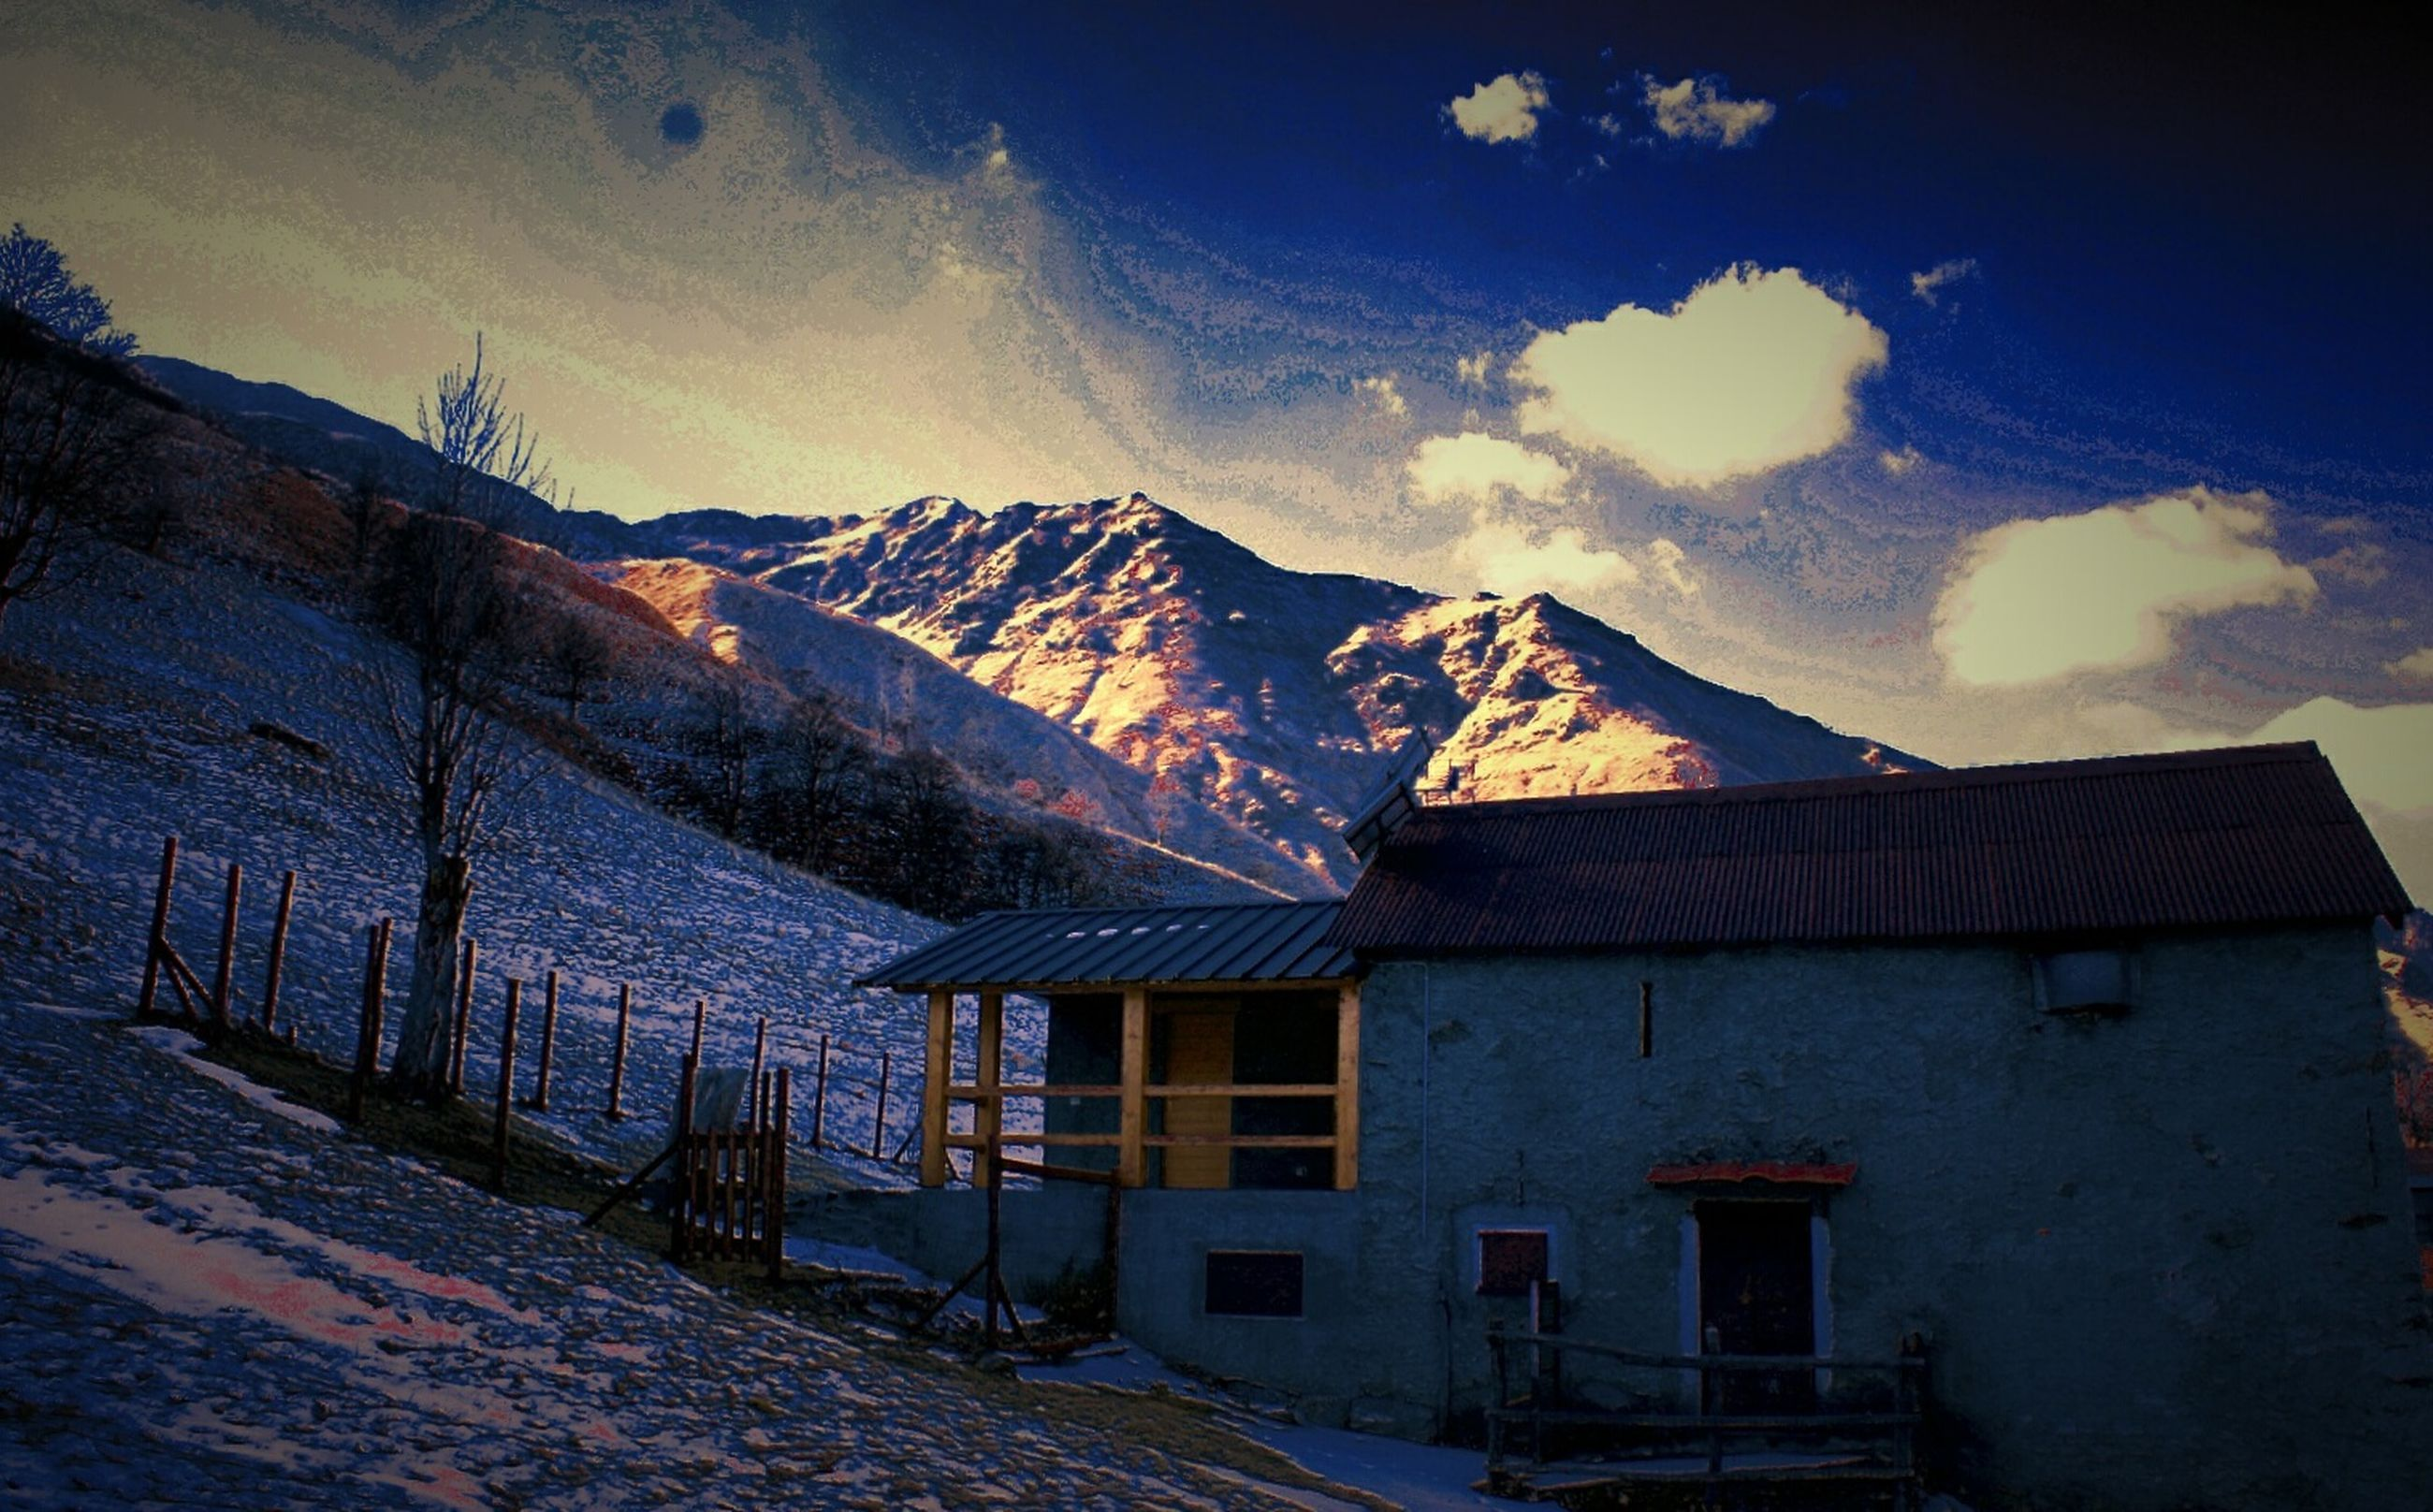 built structure, architecture, building exterior, sky, no people, cold temperature, mountain, outdoors, day